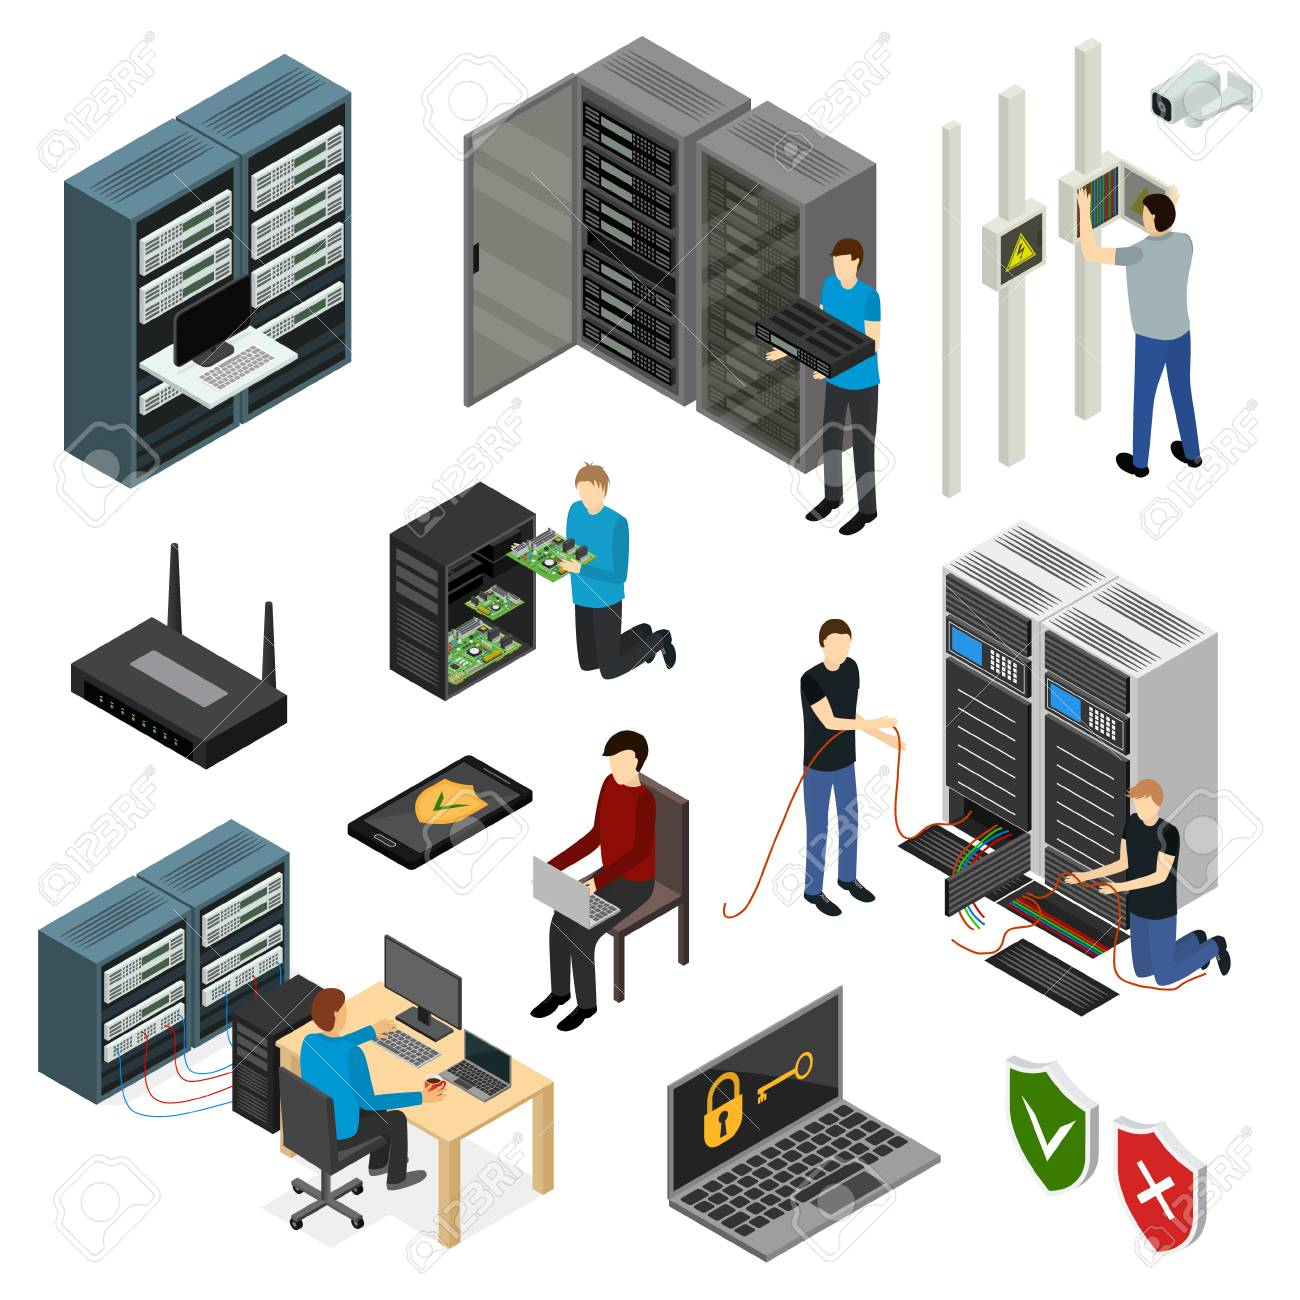 Server Hardware Signs Icons Set Isometric View Isolated on White Background. Vector illustration of Icon Technology Network Computer - 94932059